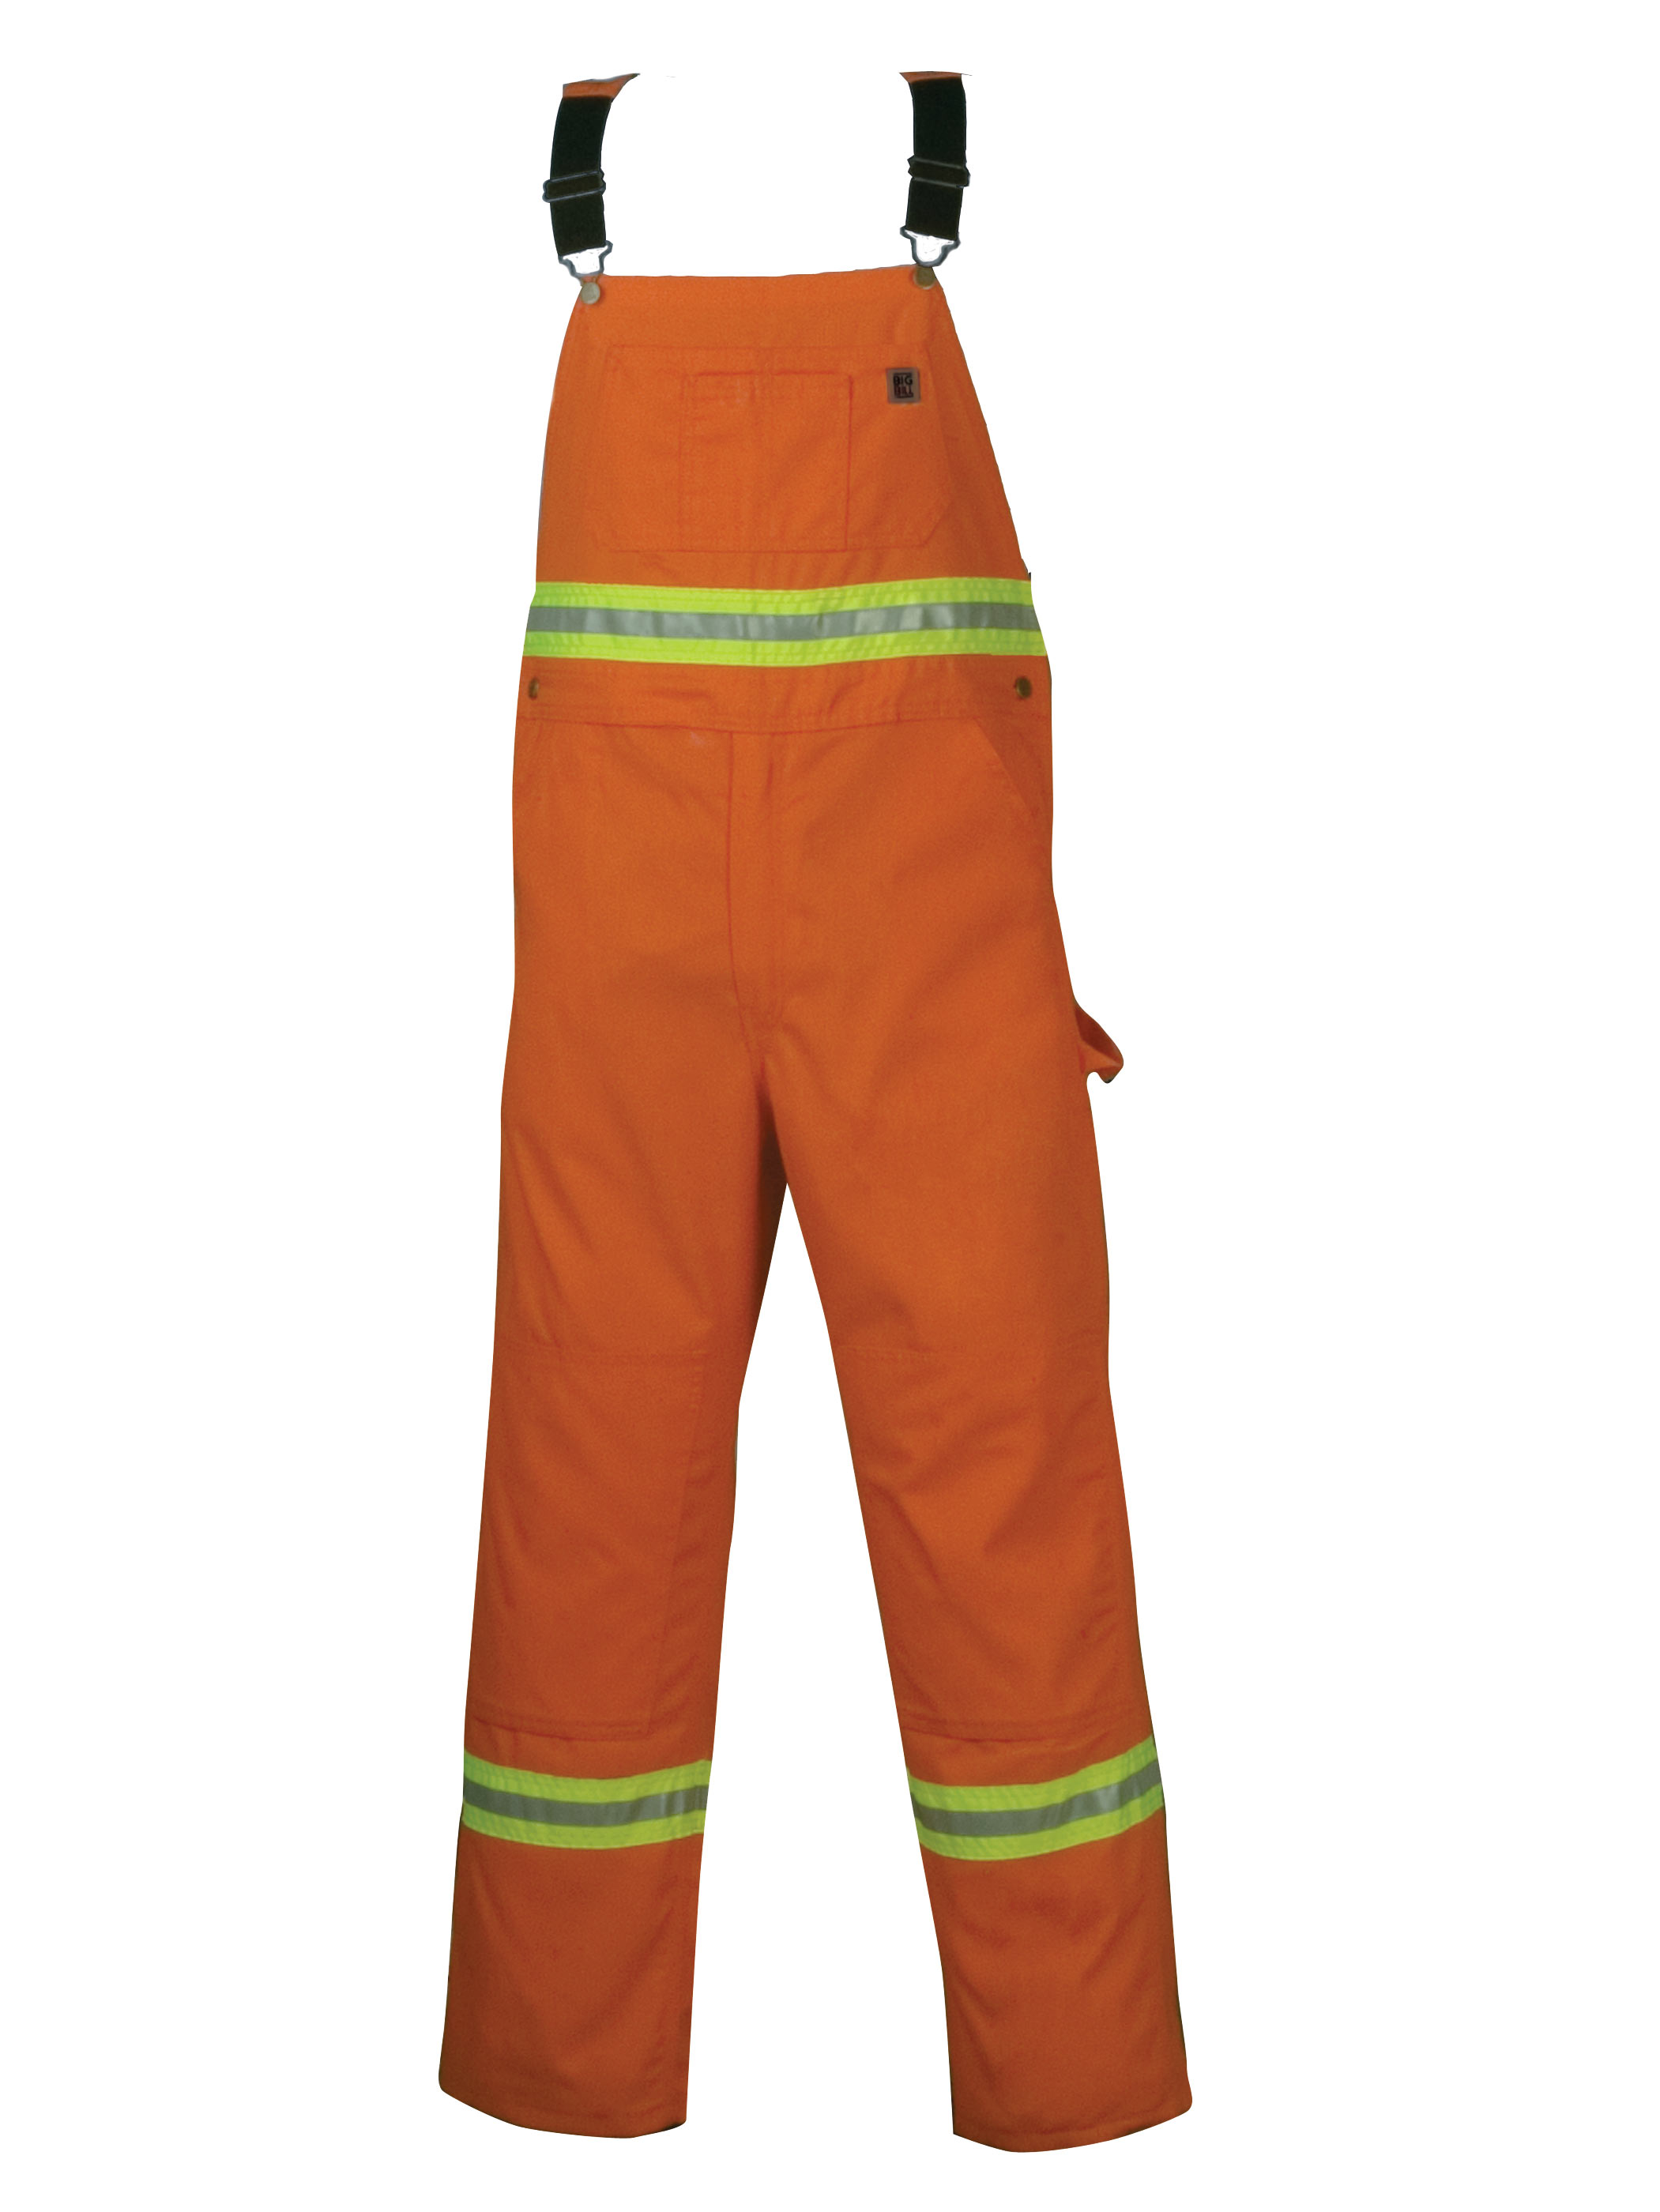 Big Bill Enhanced Visibility Unlined Twill Workwear Bib